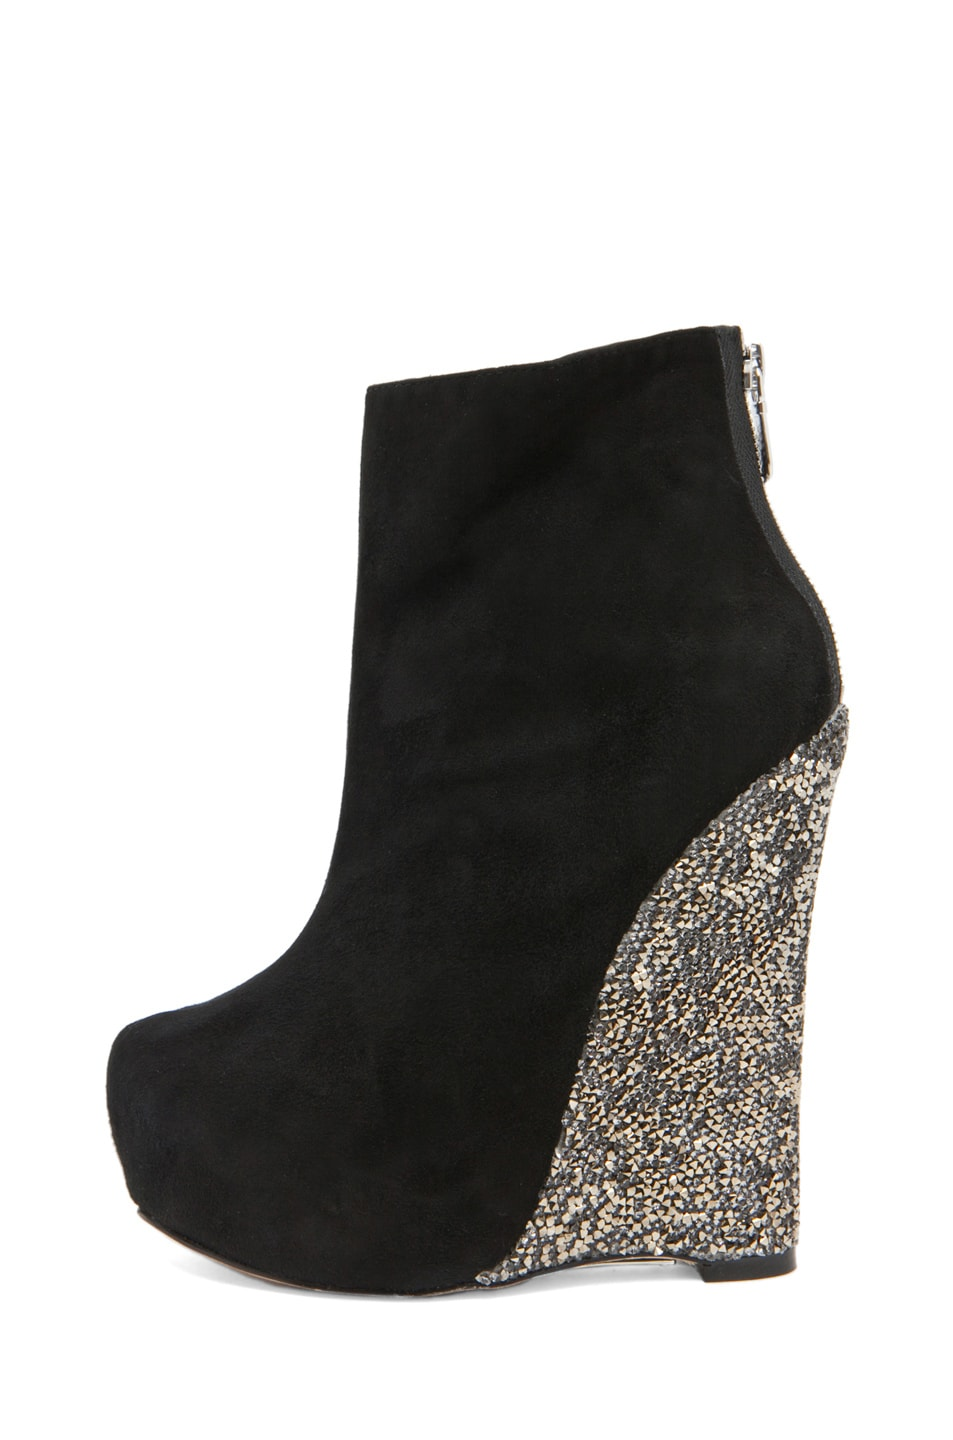 Image 1 of Alejandro Ingelmo Crystal Crosby Wedge in Black/Silver